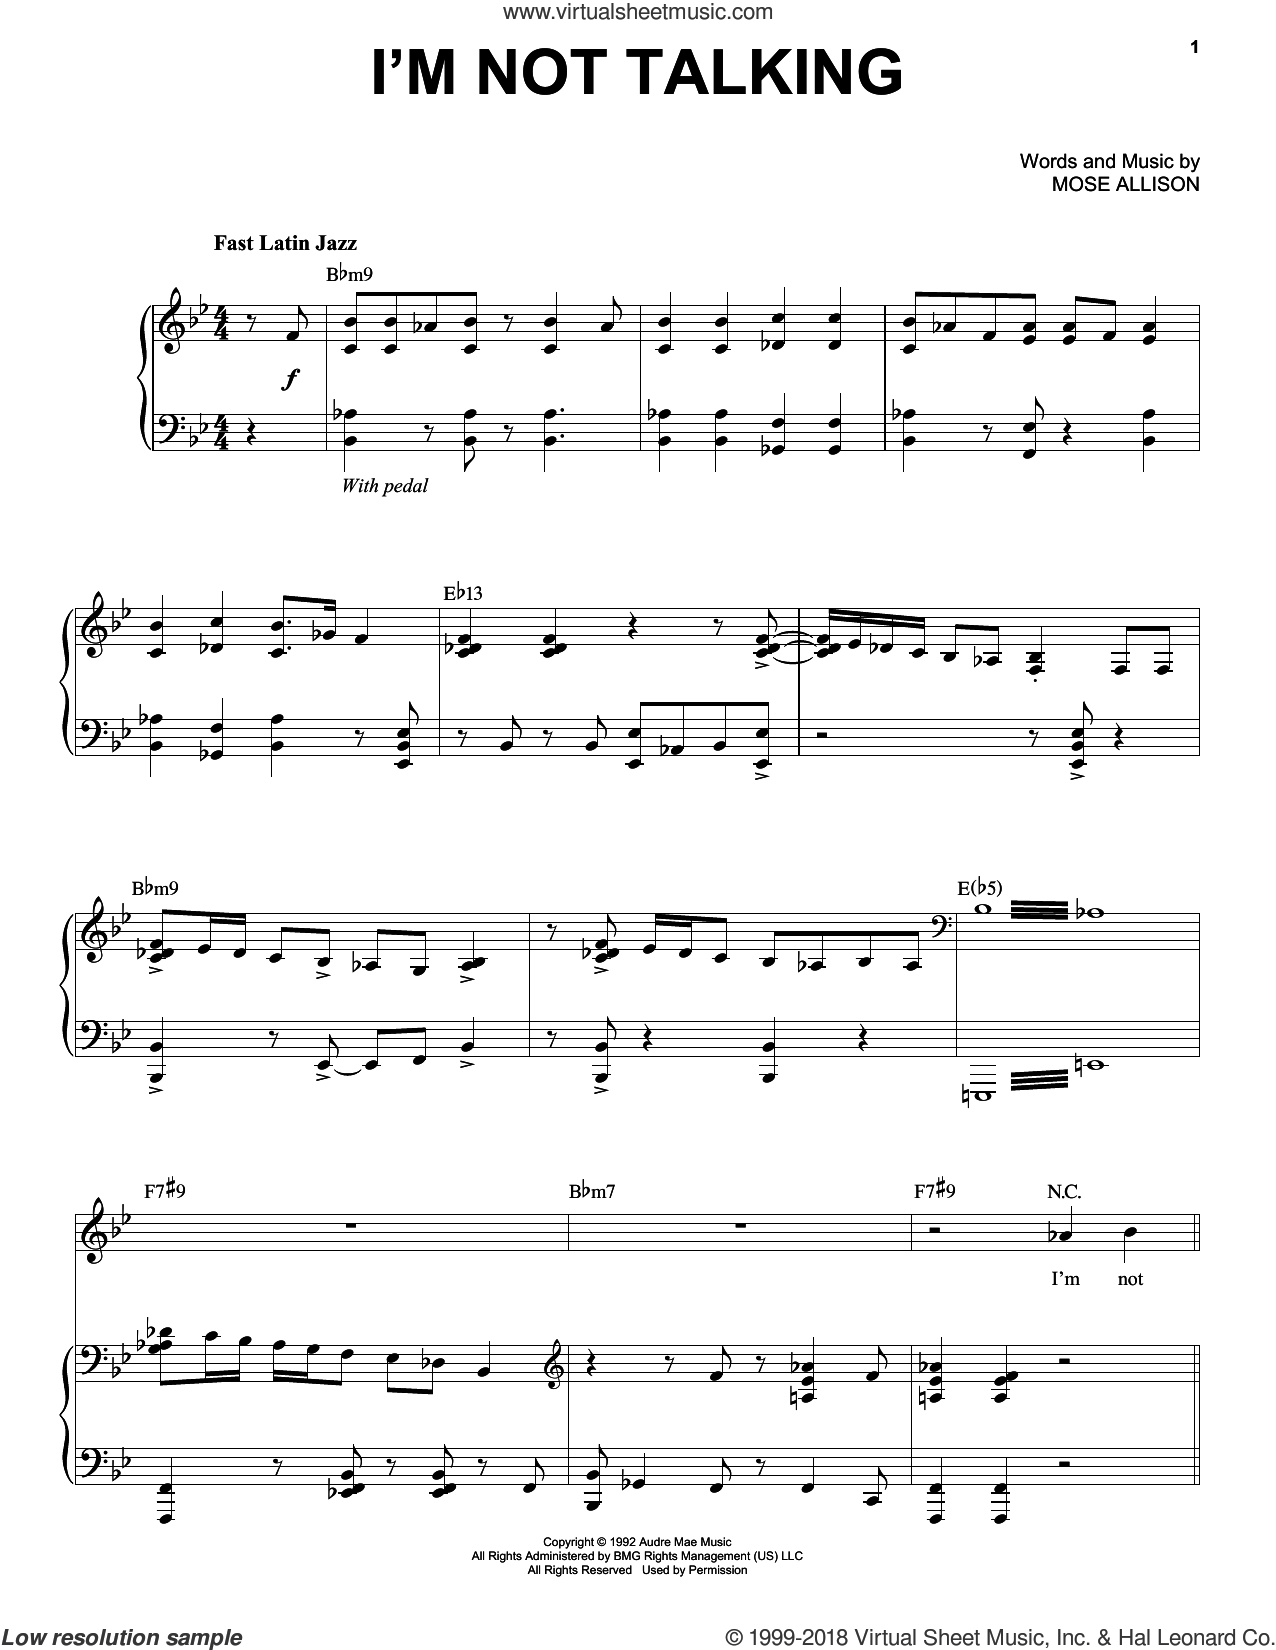 I'm Not Talking sheet music for voice and piano by Mose Allison. Score Image Preview.